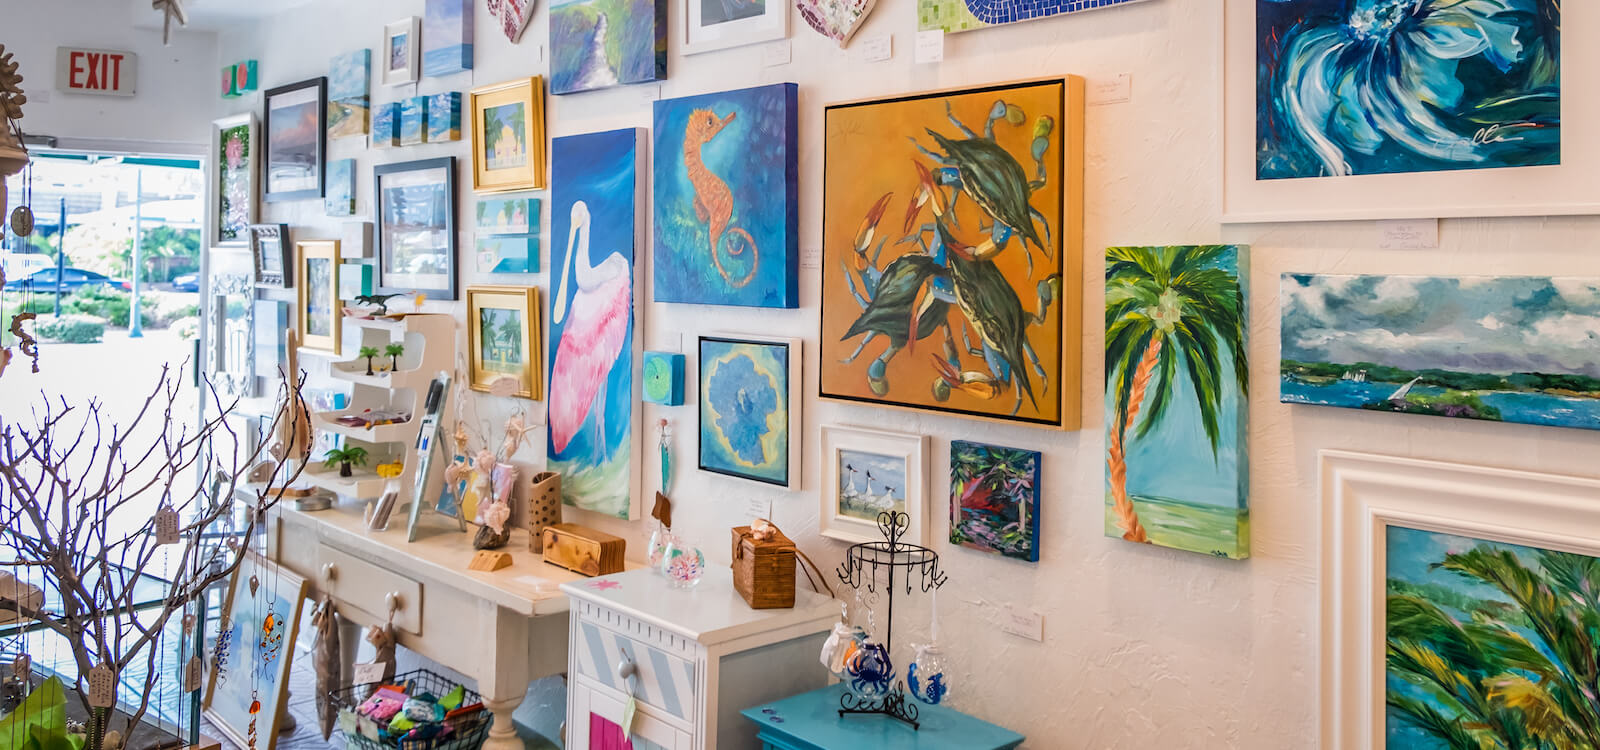 Visitors will have no trouble finding treasures with the Sarasota area offering everything from beach shops to boutiques filled with one-of-a-kind art, t-shirts, sweatshirts, hats, flip-flops, and more. Photo by Mary Carol Fitzgerald | MustDo.com